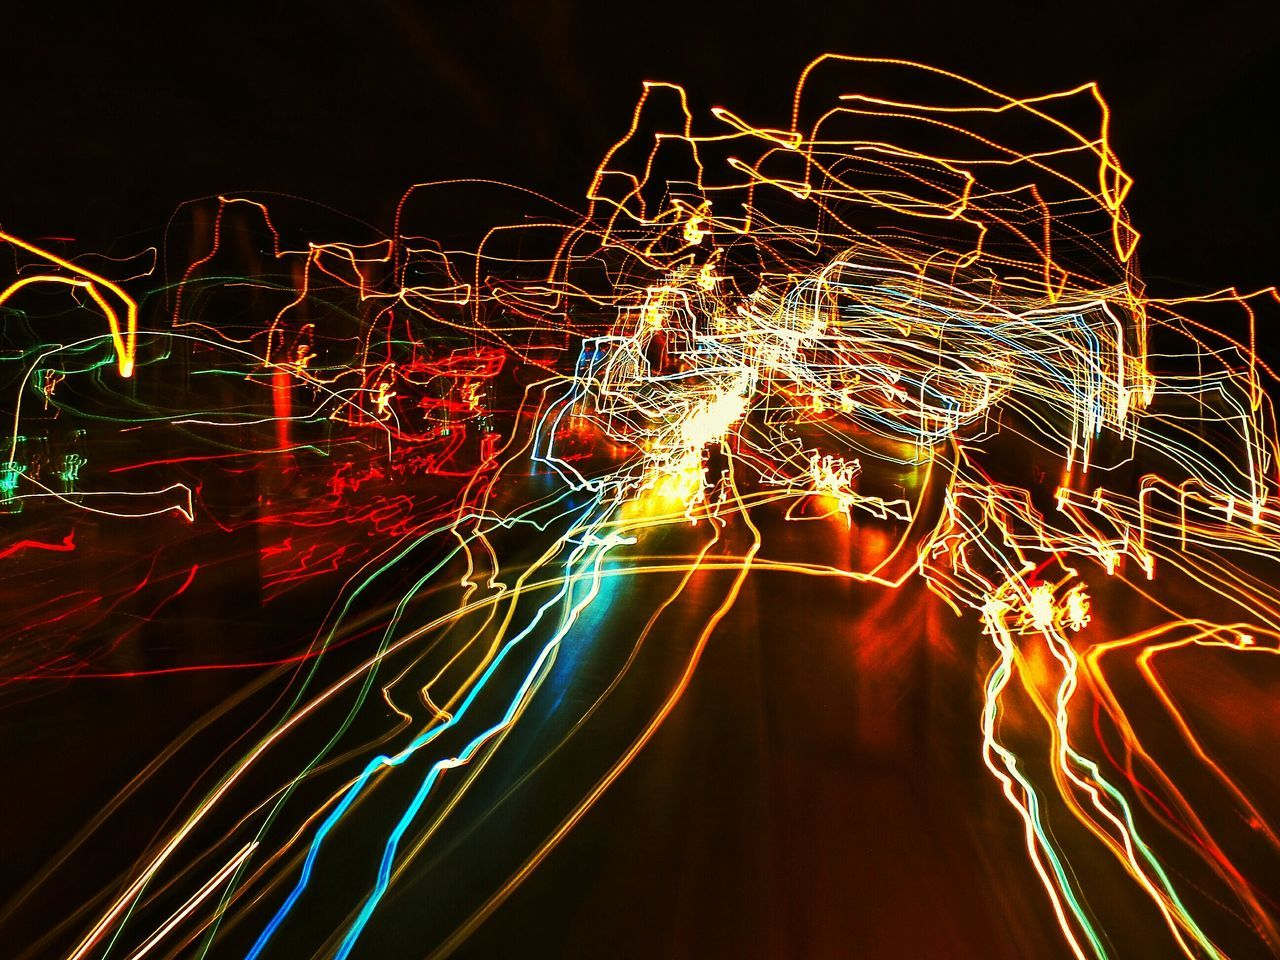 long exposure, night, illuminated, light trail, glowing, light painting, motion, speed, blurred motion, no people, multi colored, abstract, electricity, pattern, outdoors, technology, wire wool, black background, close-up, sky